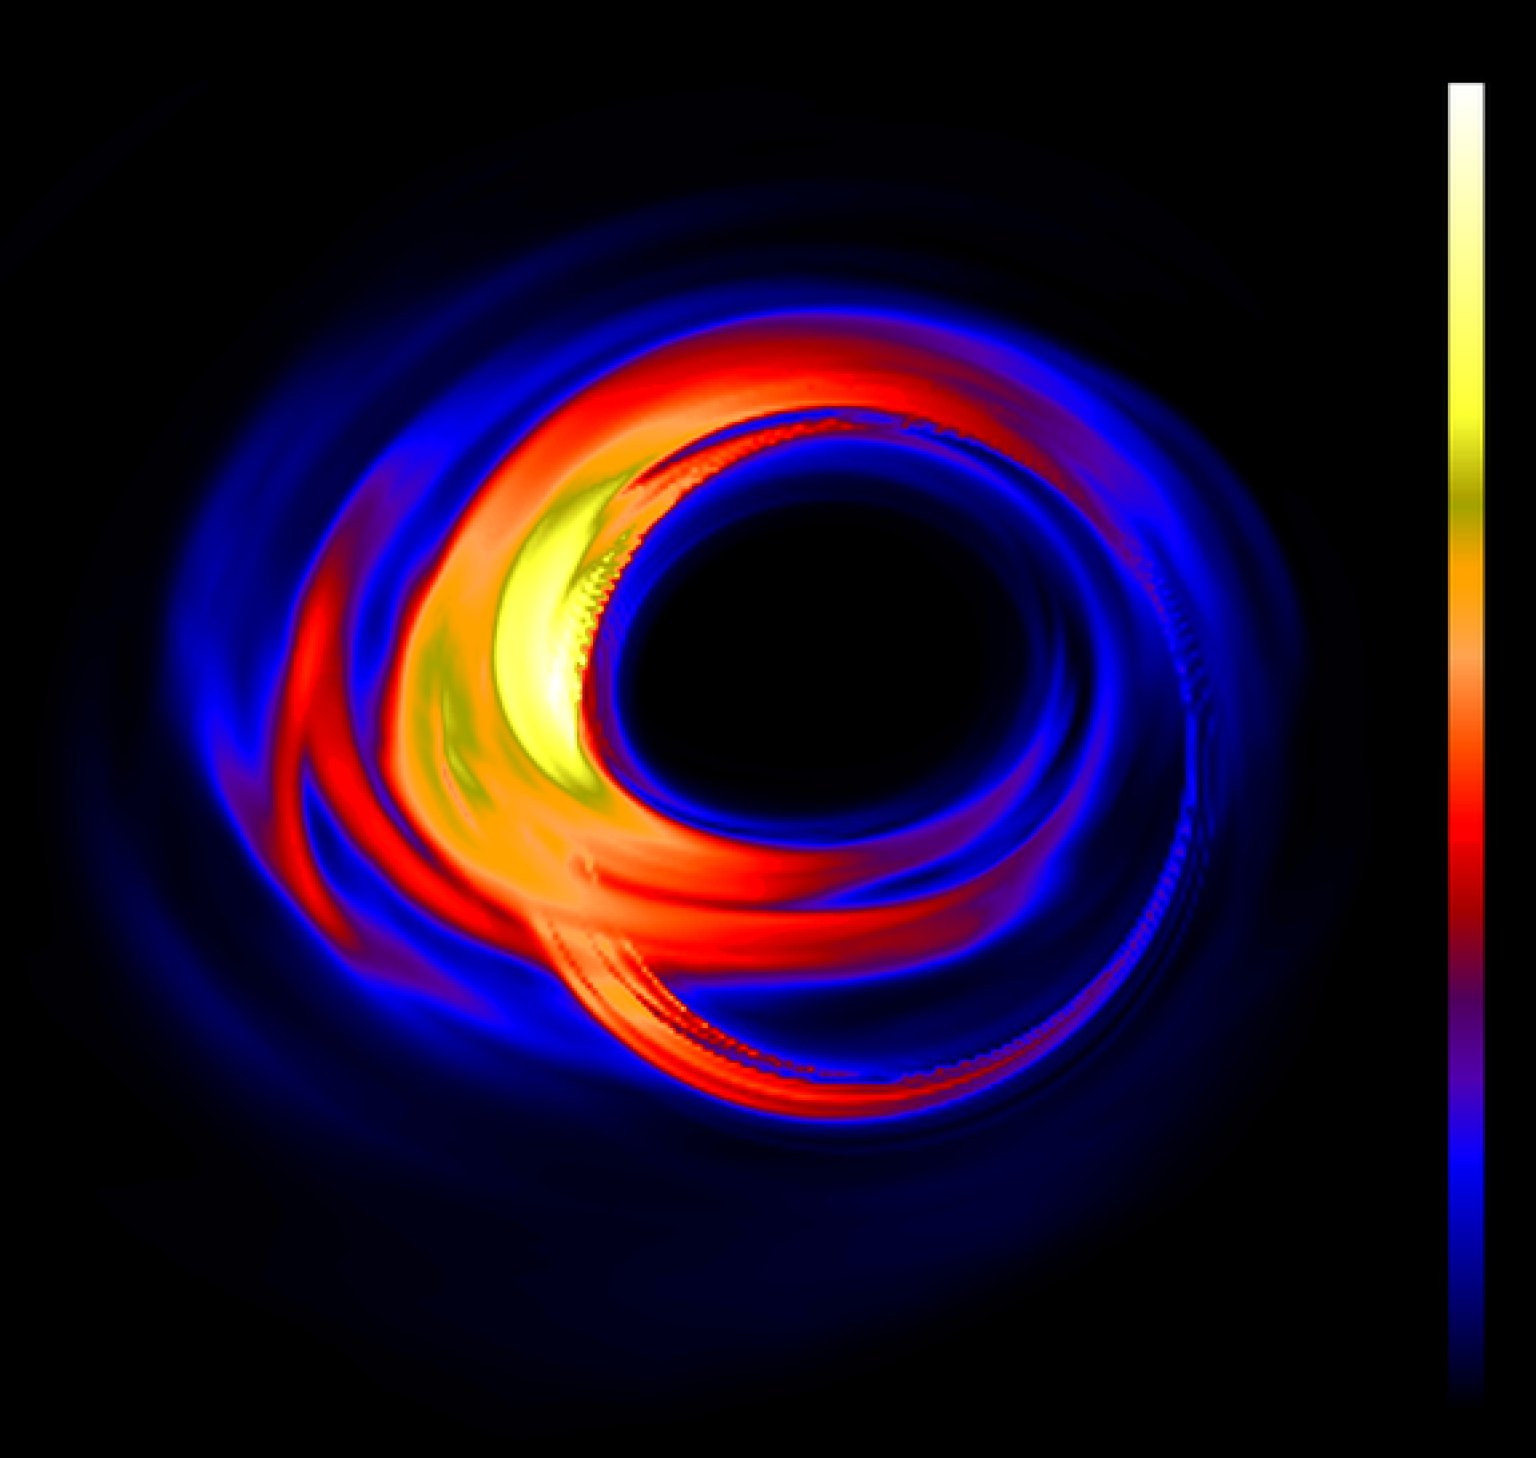 seeing a black hole - photo #23